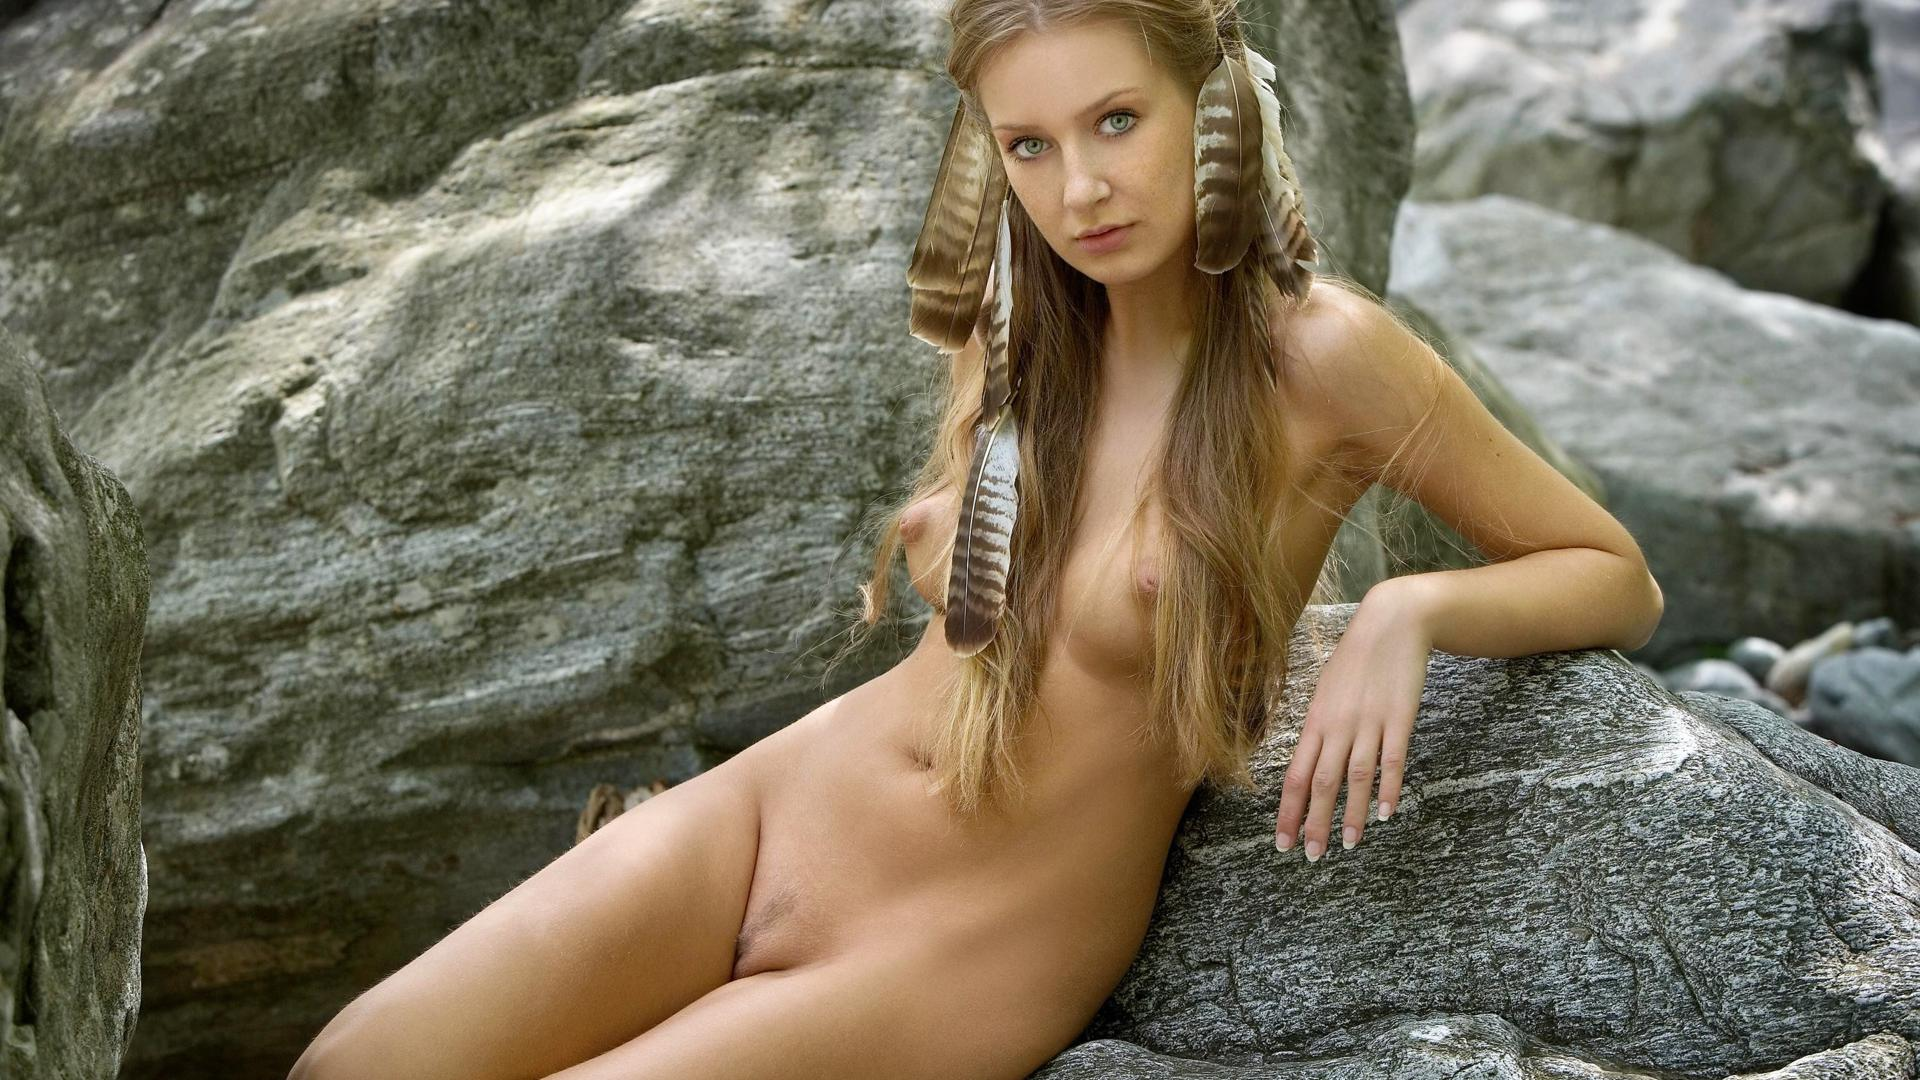 Cheyenne indian girl nude were visited